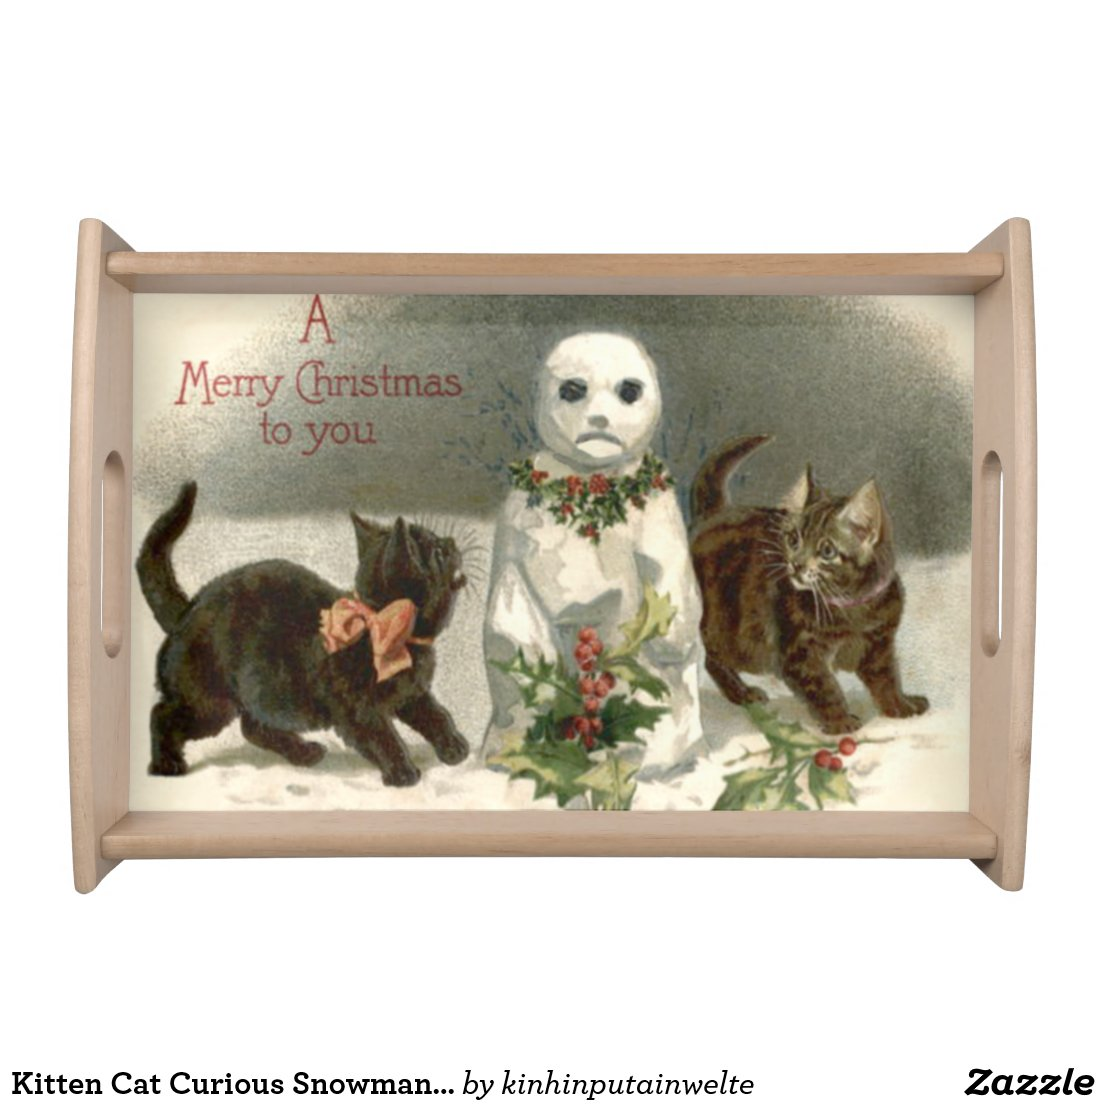 Kitten Cat Curious Snowman Holly Wreath Serving Tray